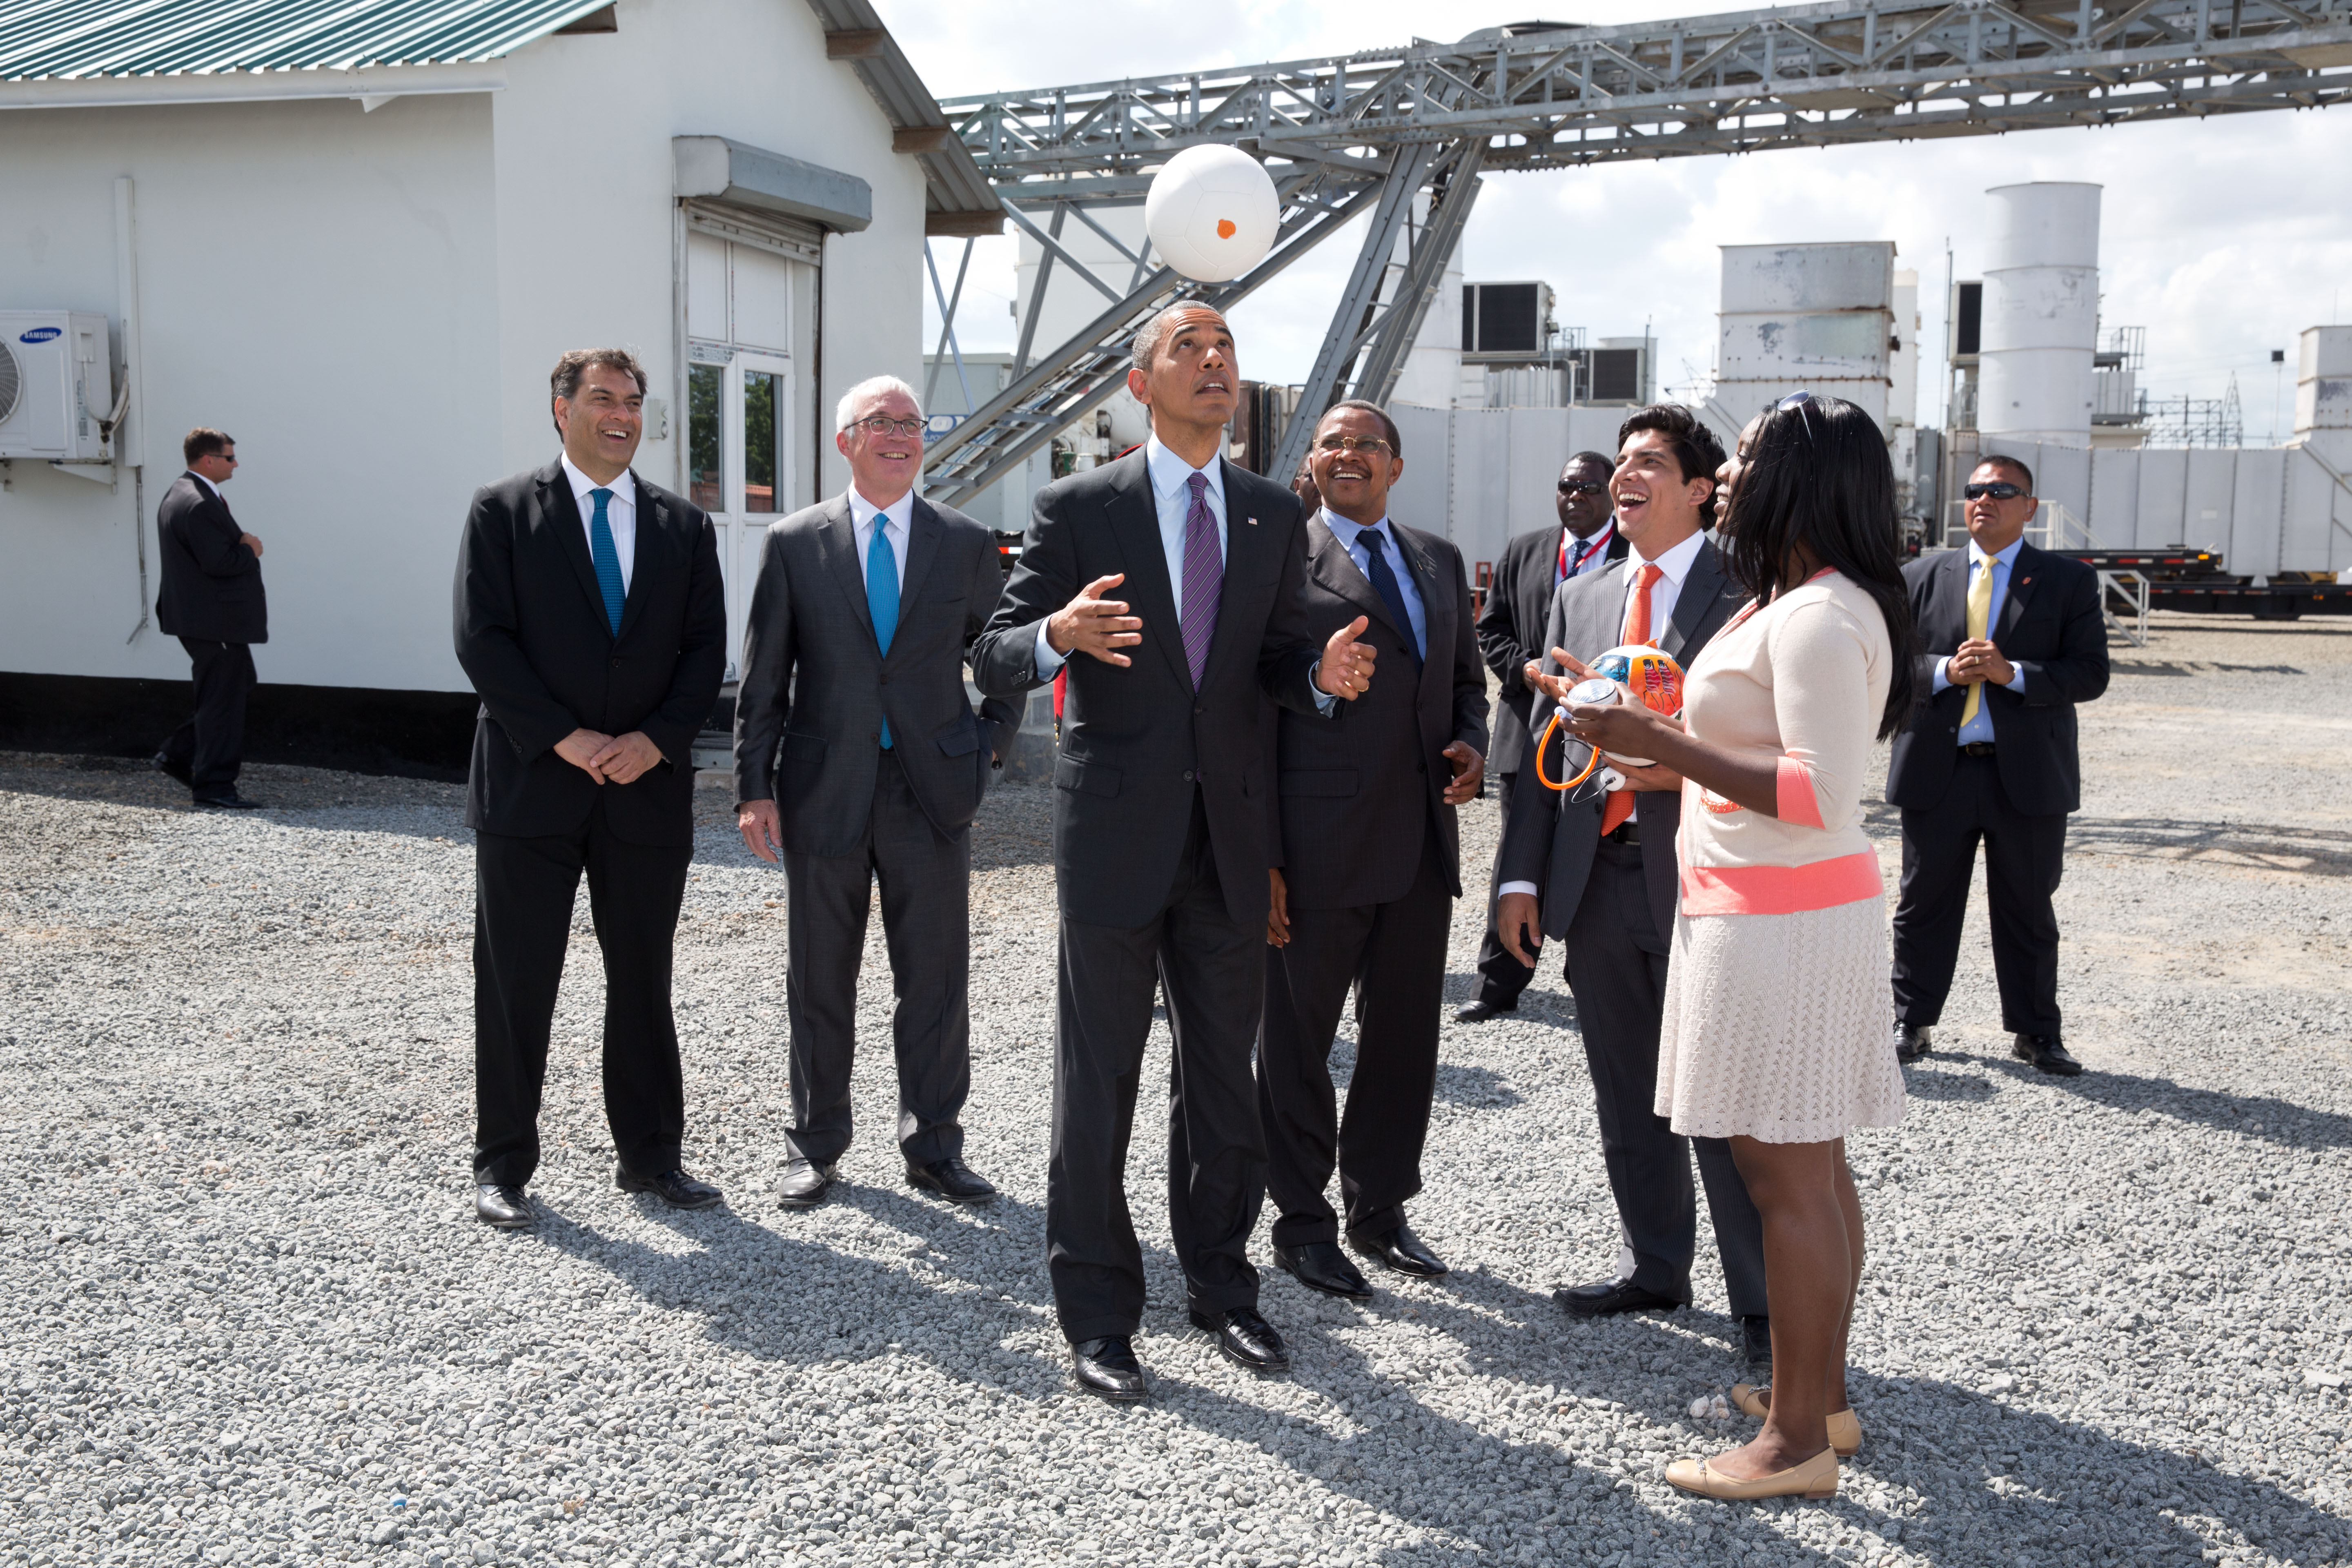 President Barack Obama tosses a Soccket ball in the air at the Ubongo Power Plant in Dar es Salaam